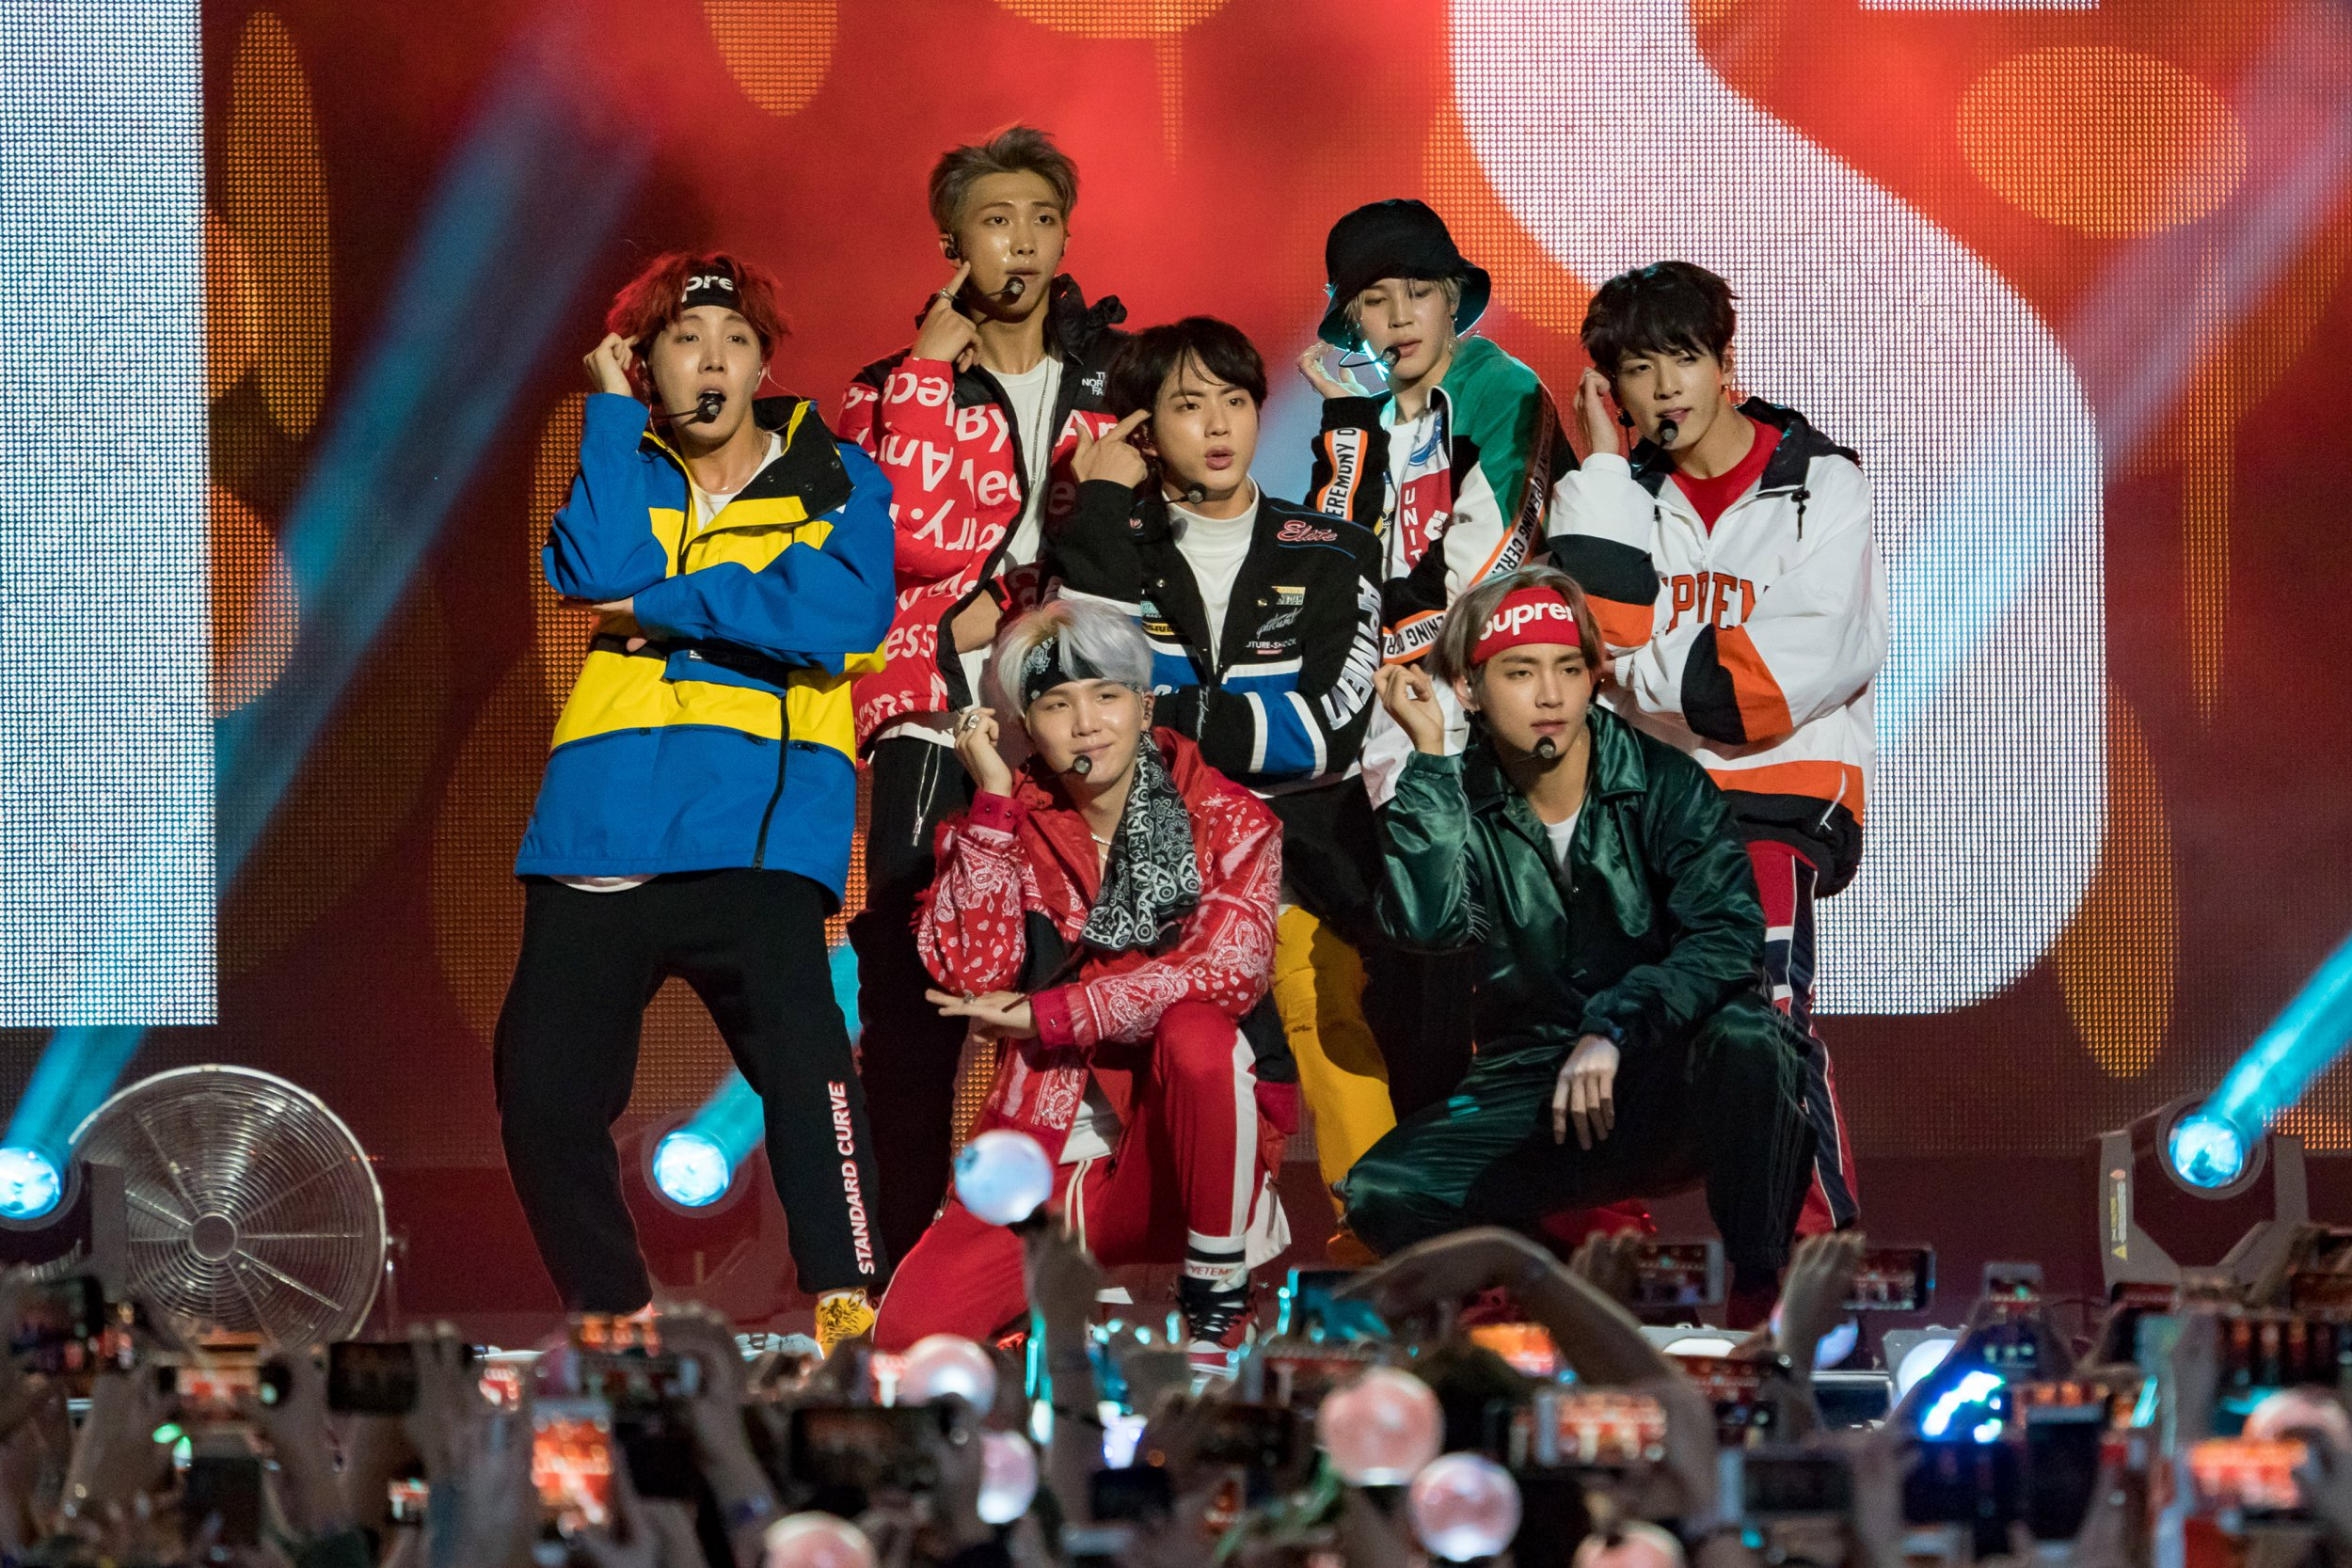 Is Big Hit teasing a new K-Pop group? Fans demand truth behind You & Me